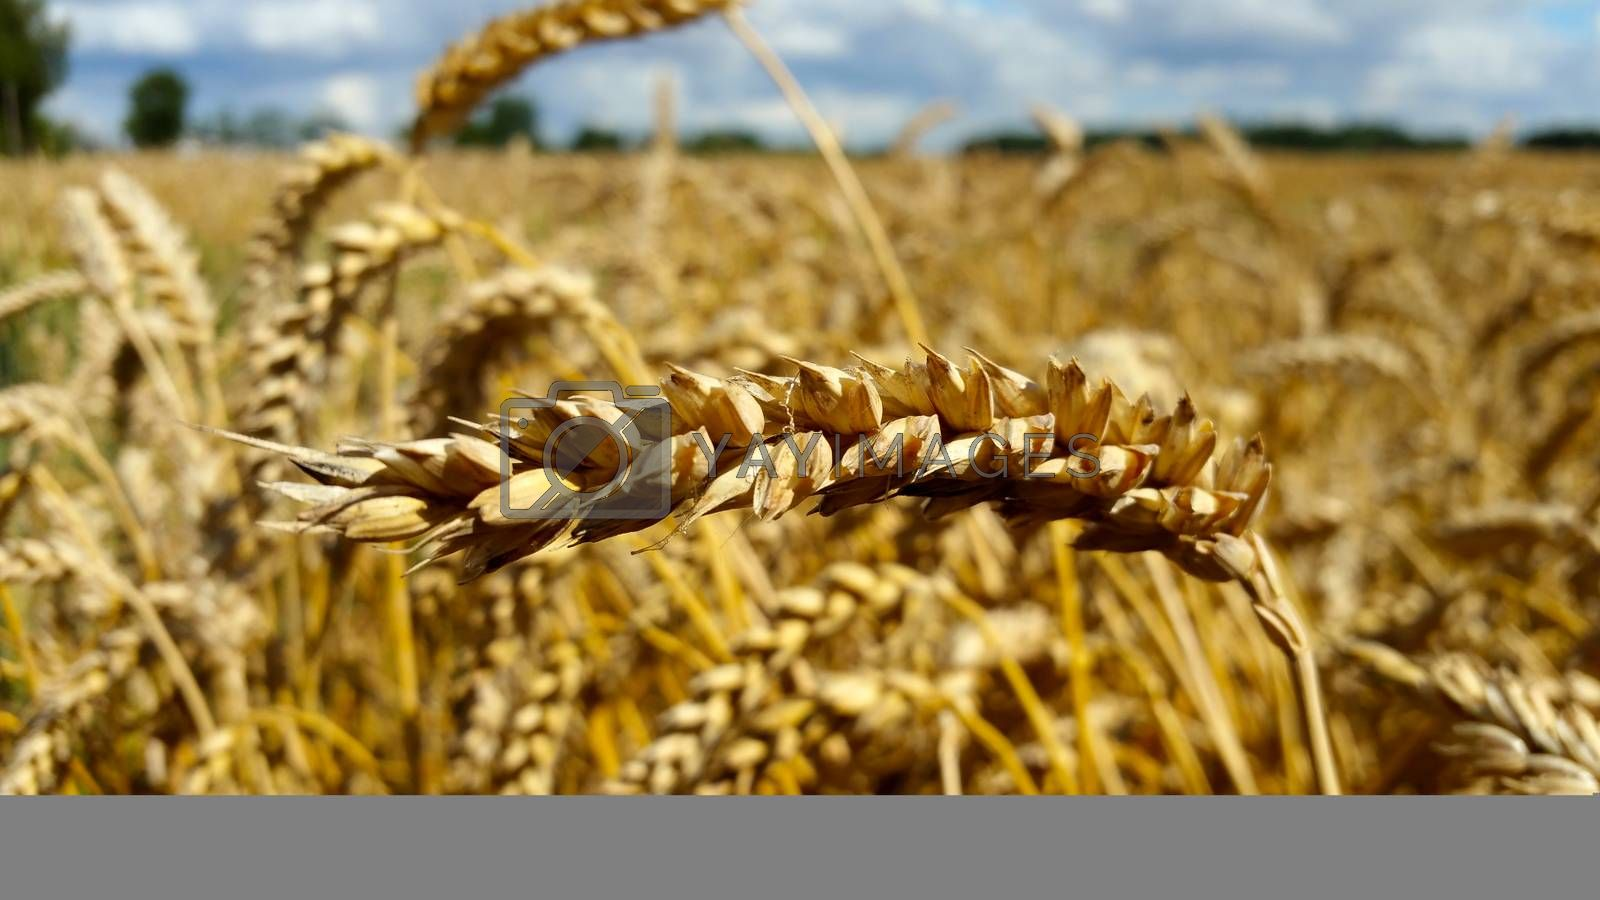 an ear of wheat, close-up against a background of wheat fields.